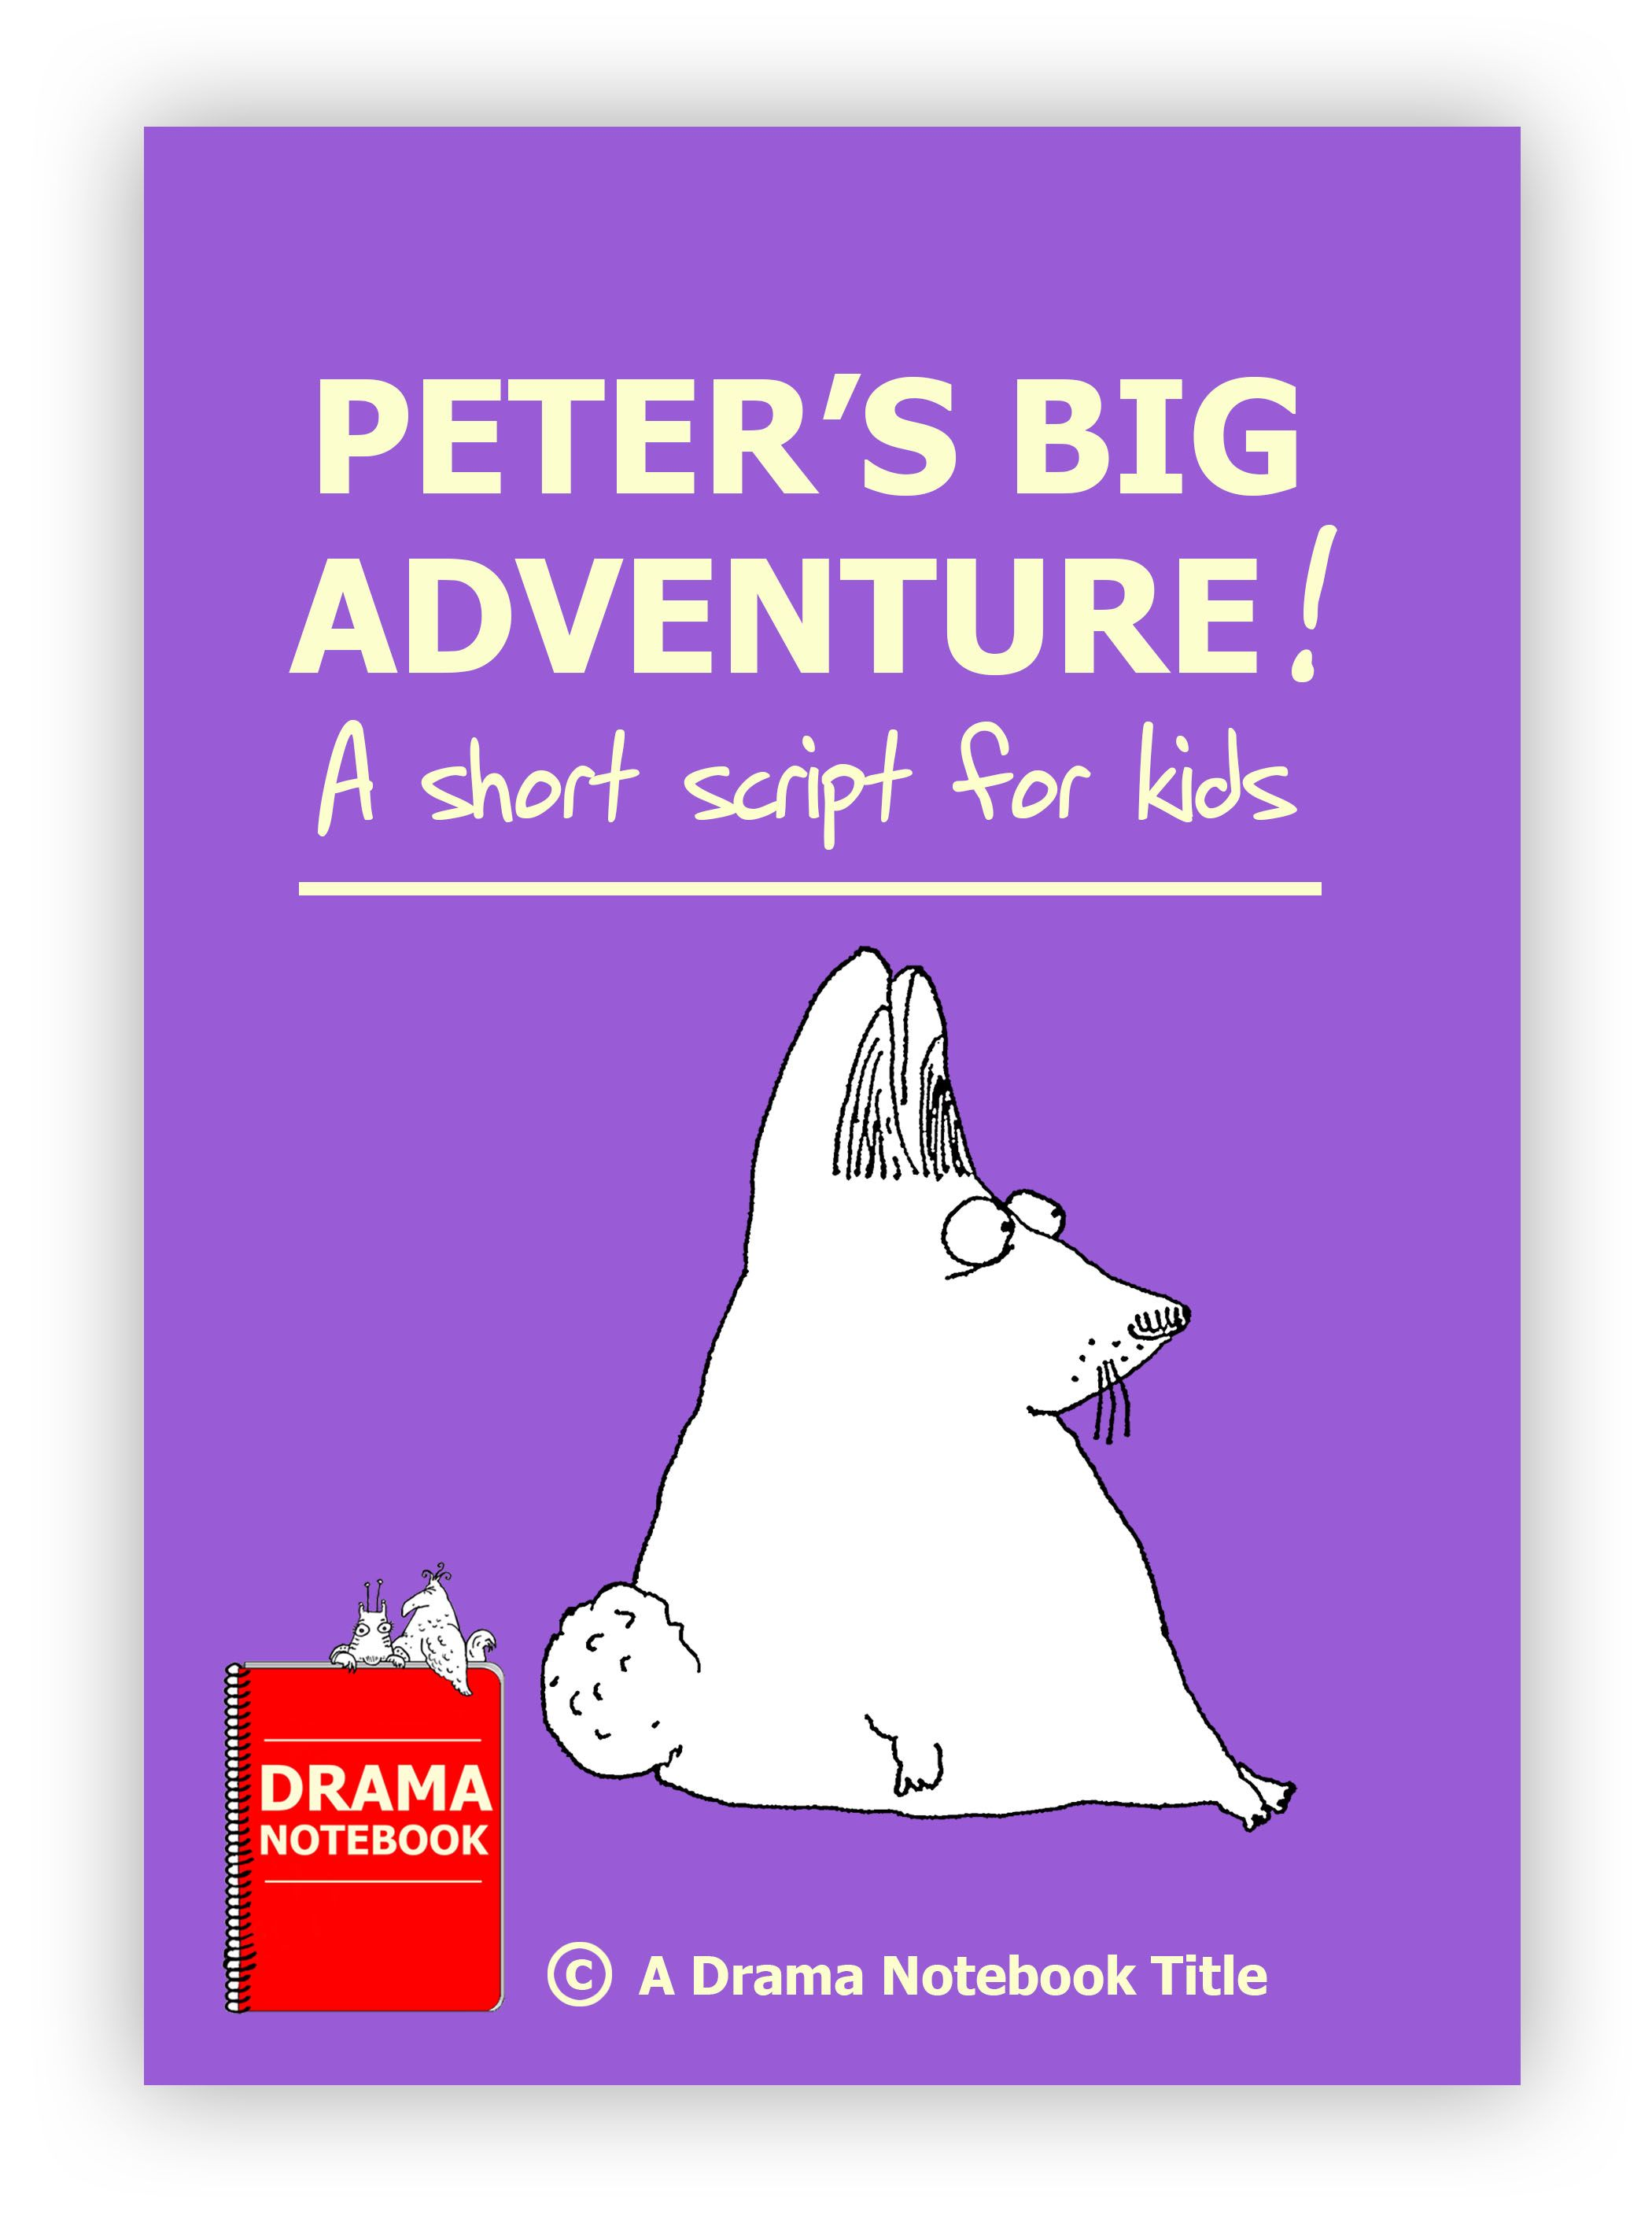 Peter's Big Adventure Play scripts for kids, Drama for